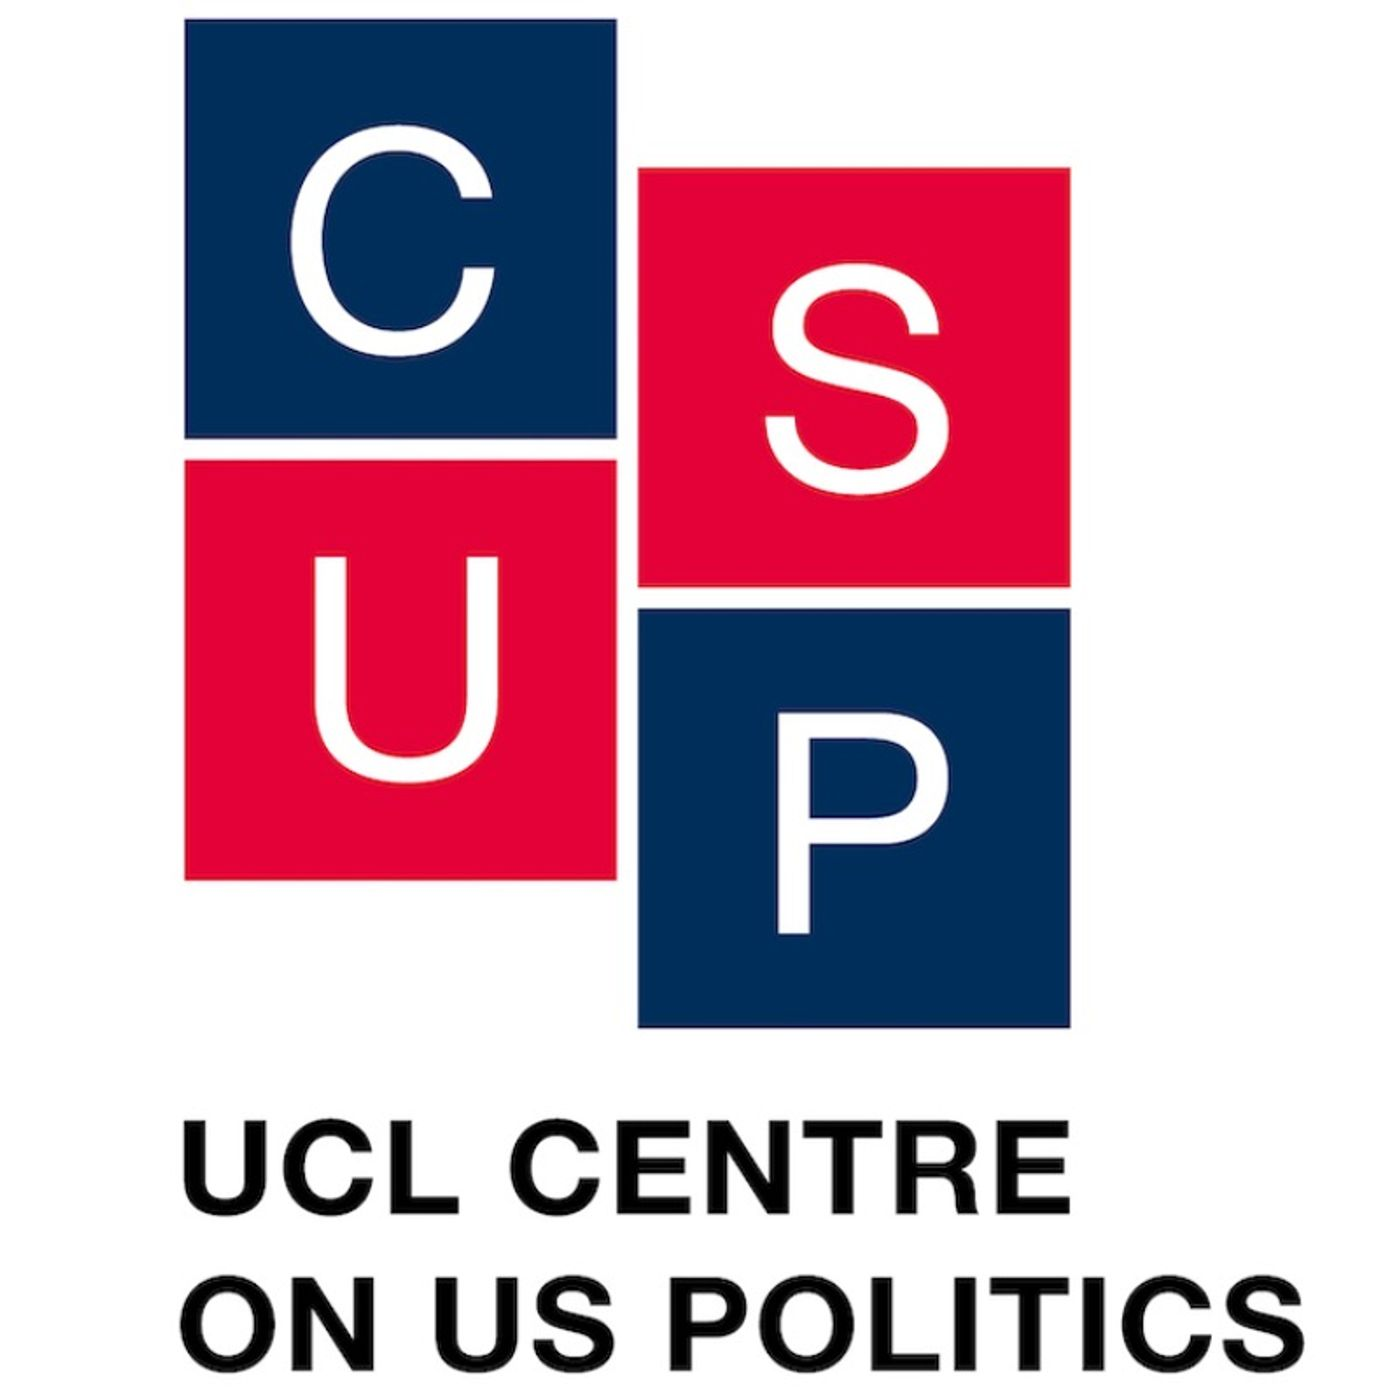 THE CENTRE ON US POLITICS - A Retrospective on the 2020 US Elections